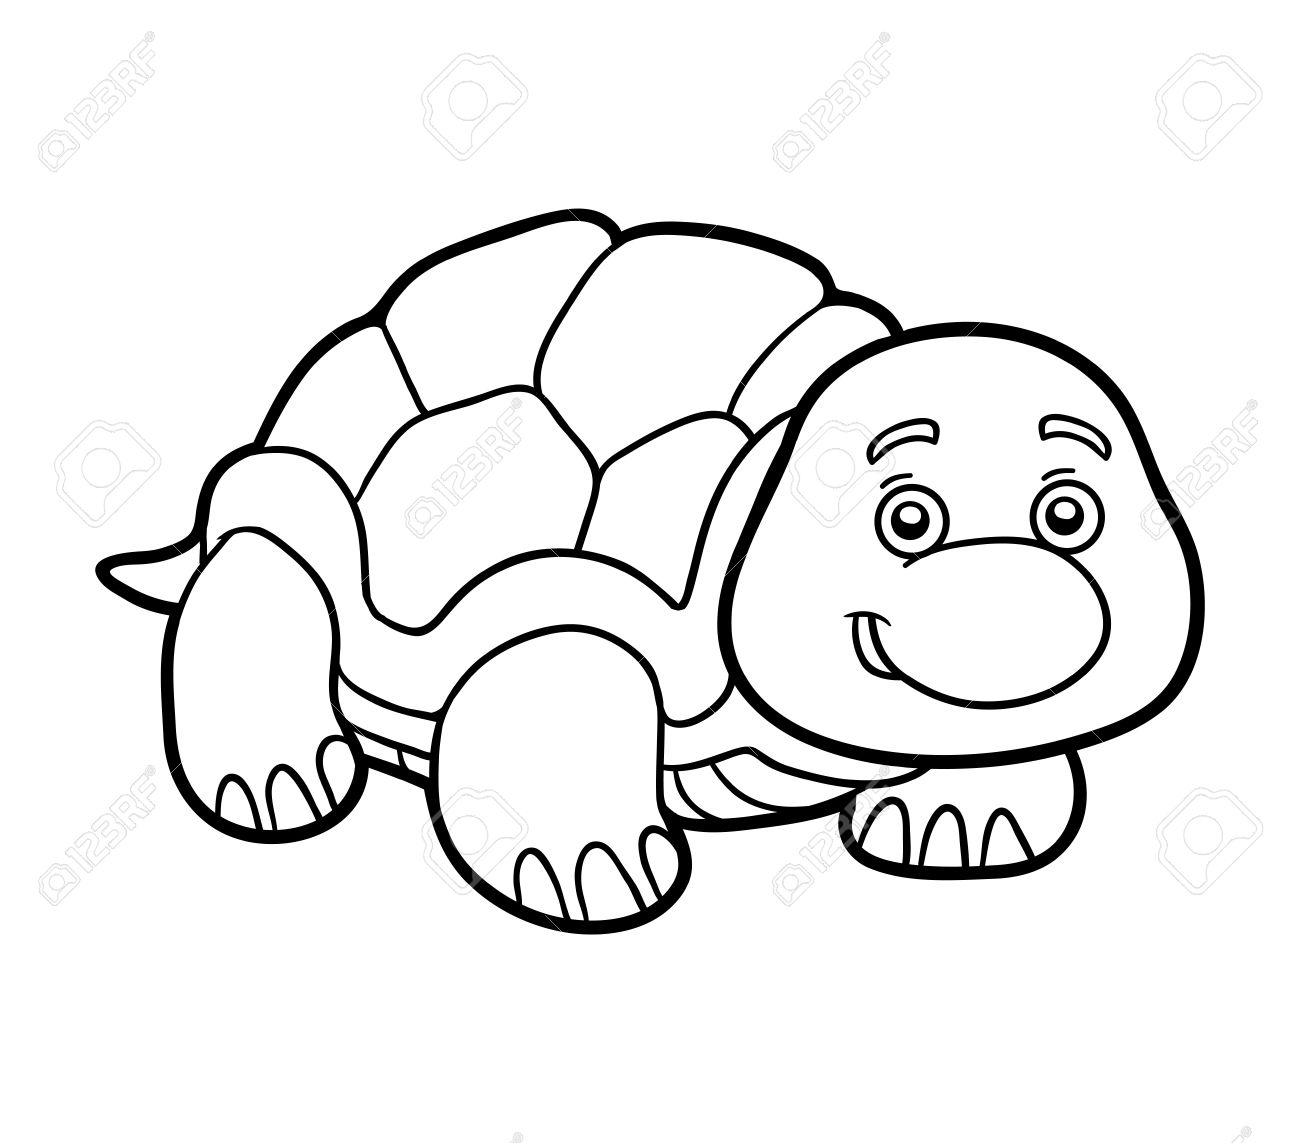 Coloring book for children (turtle)